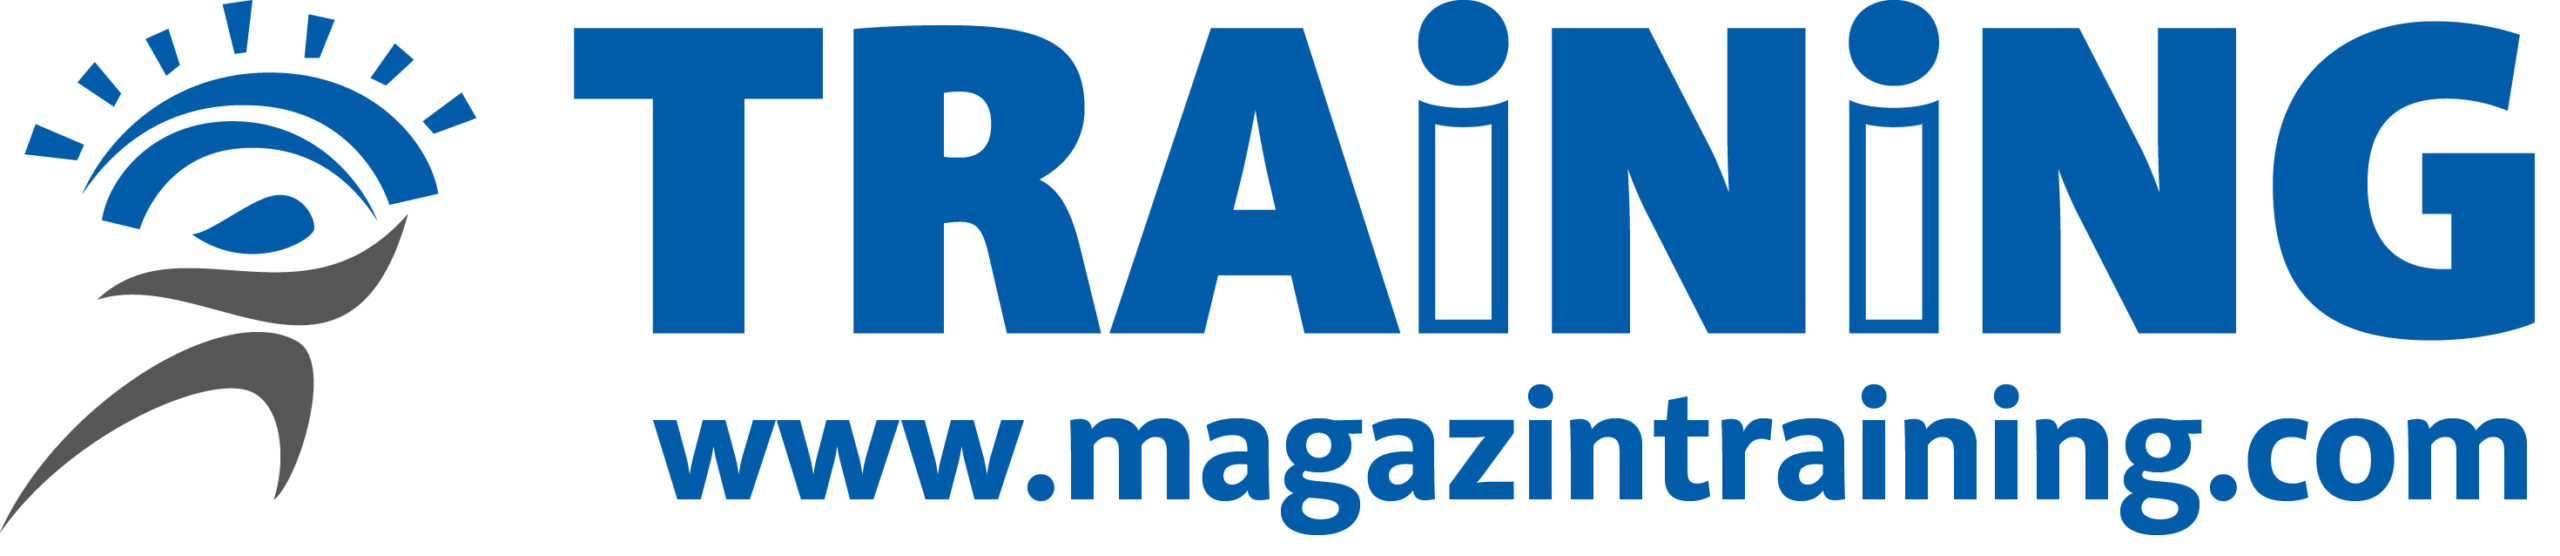 Training Magazin Logo